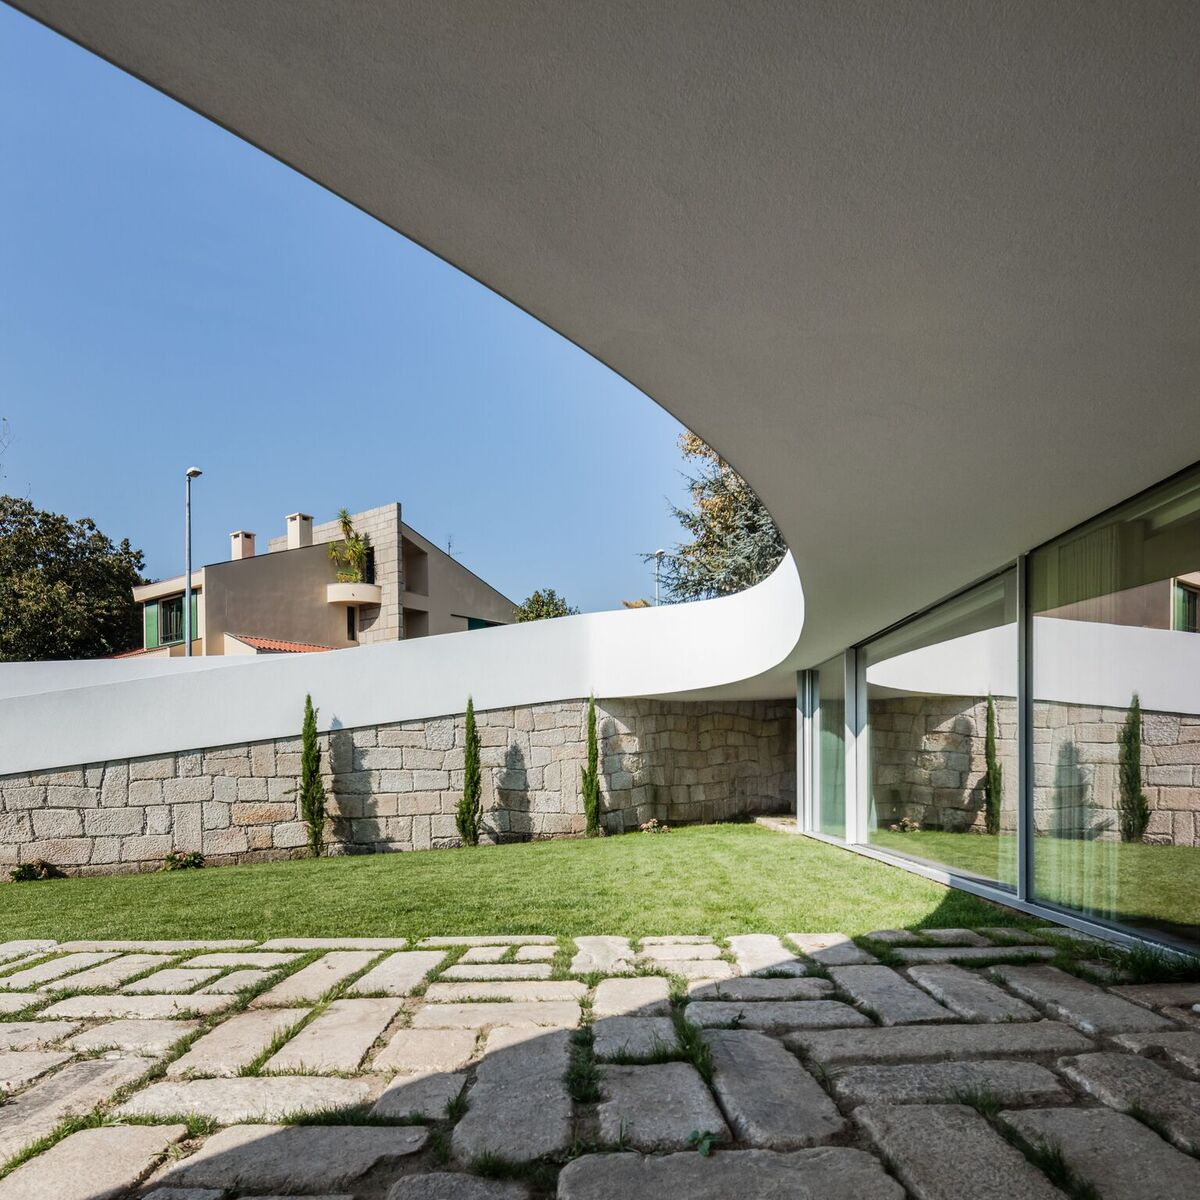 The curving shade swoops across the land creating a courtyard with a great sense of privacy